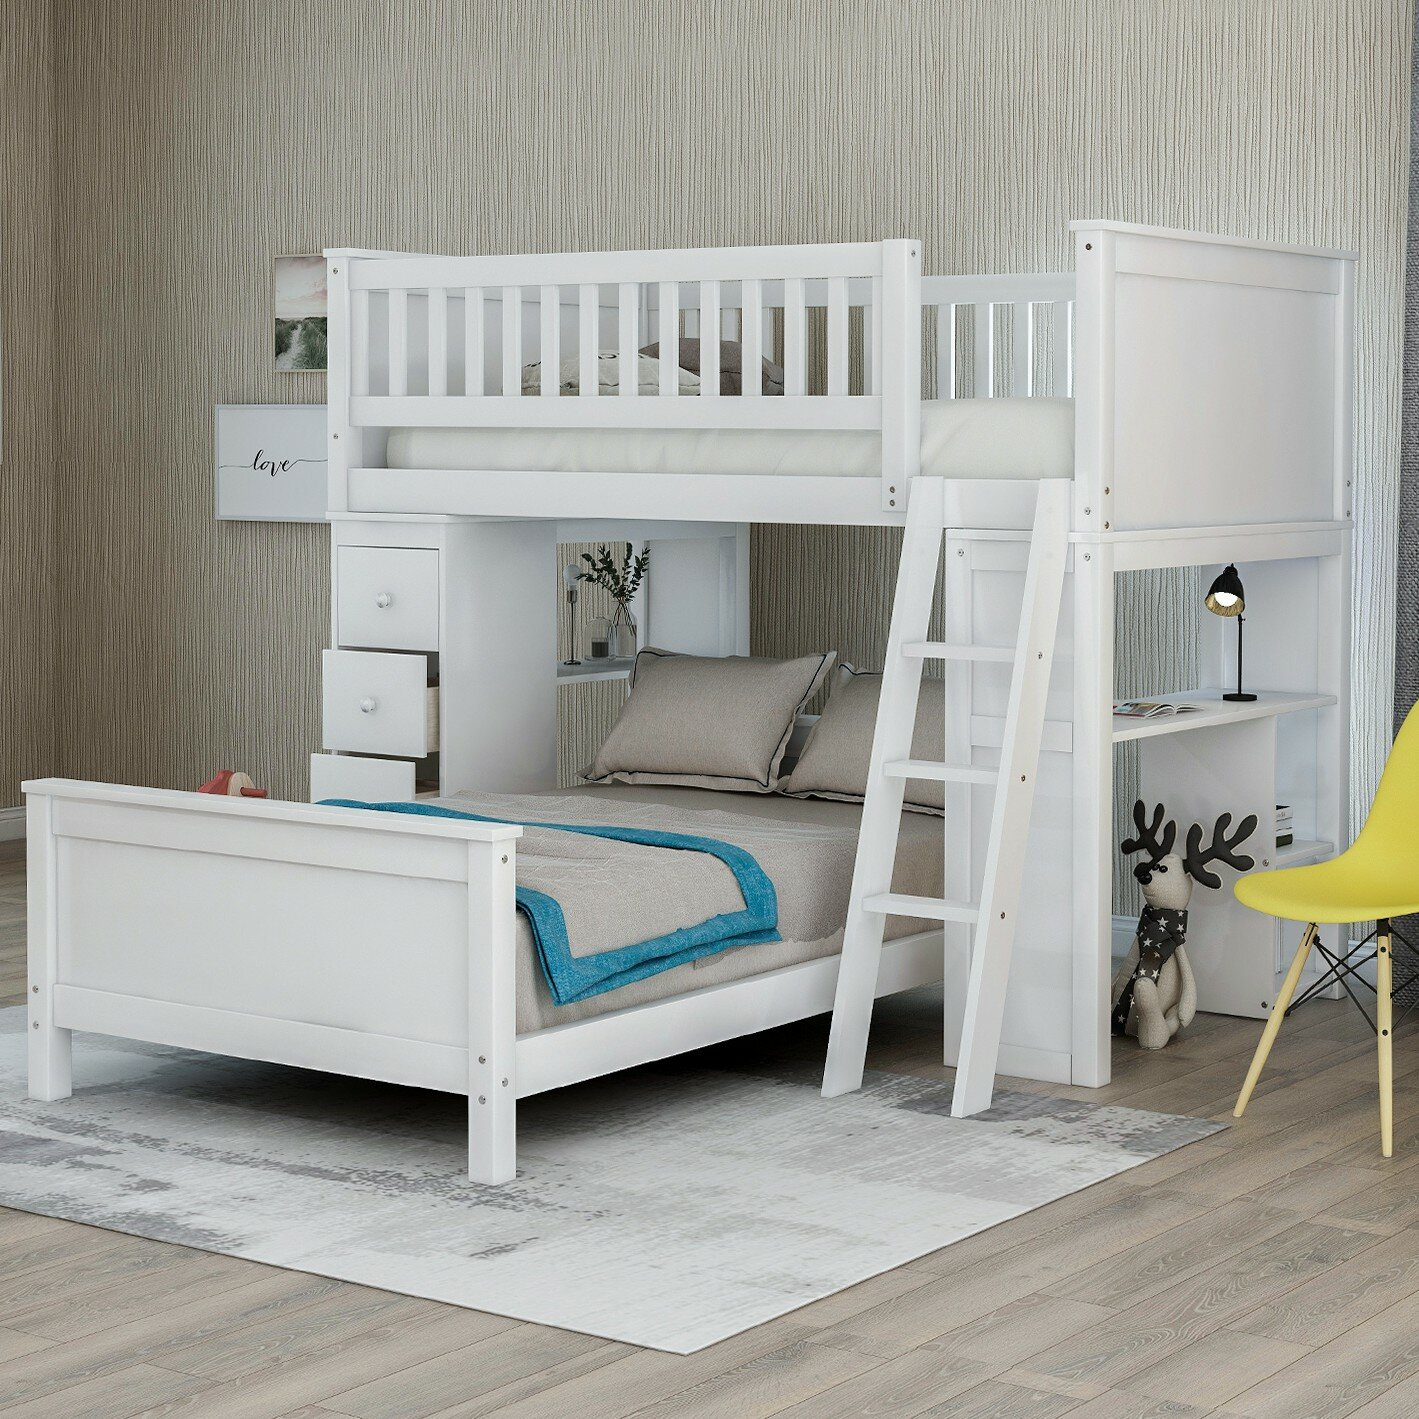 Harriet Bee Twin Over Twin L Shaped Bunk Bed With Drawers And Shelves Reviews Wayfair